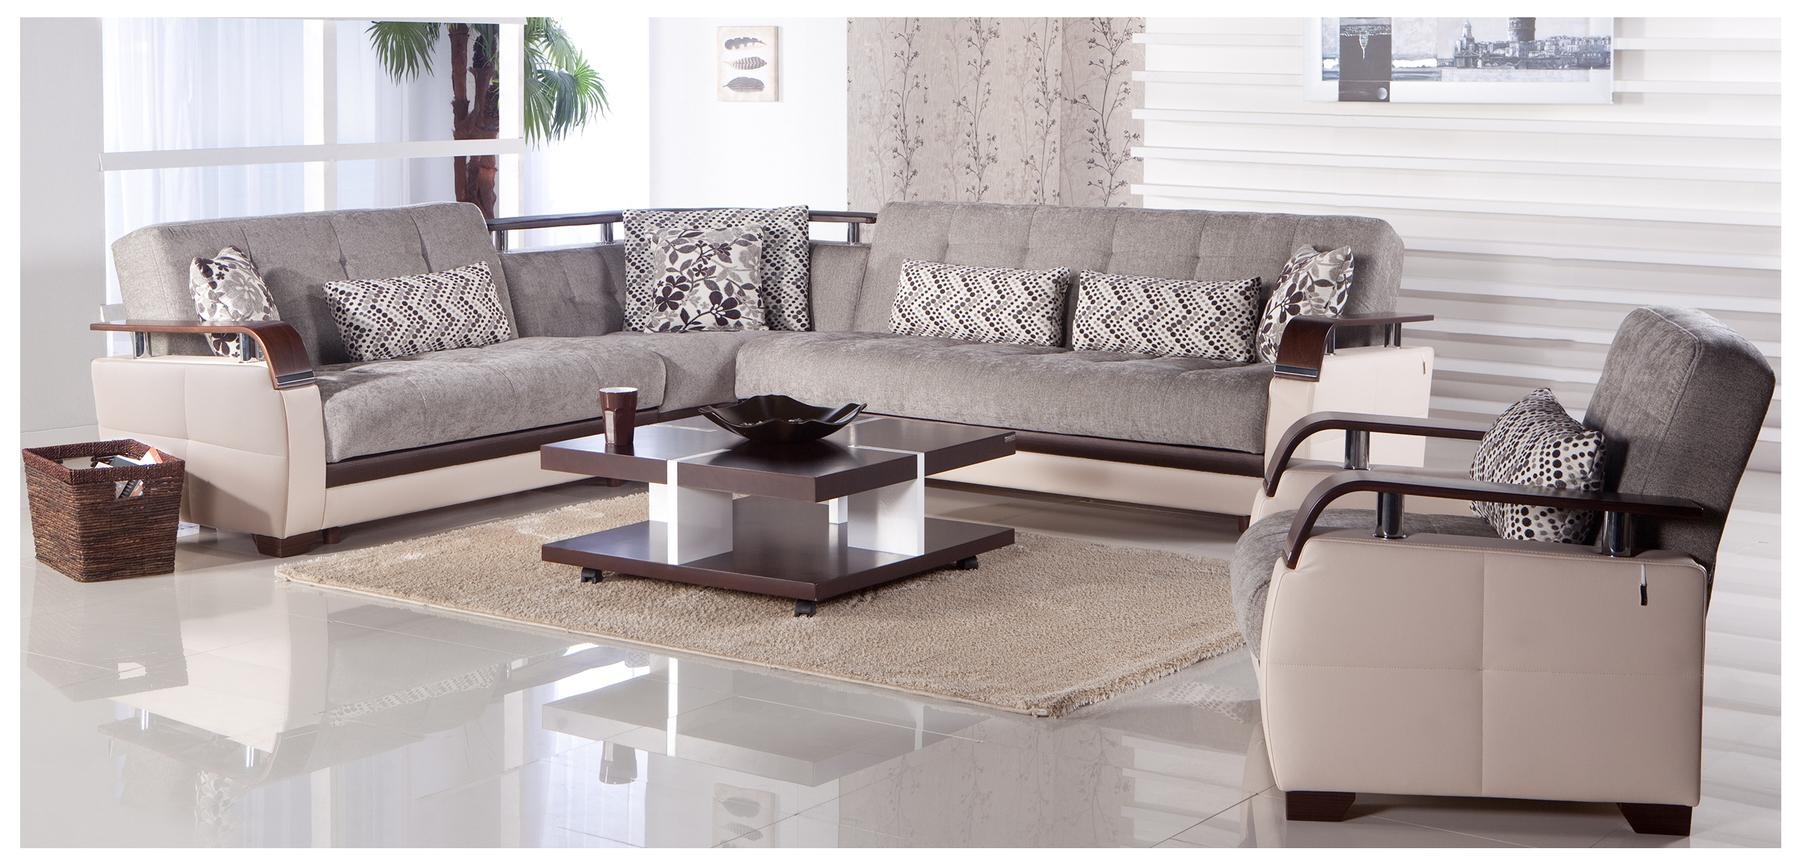 Sofas Center : Appealing Cream Colored Sectional Sofa On Leather With Regard To Modern Sofas Houston (Image 13 of 20)